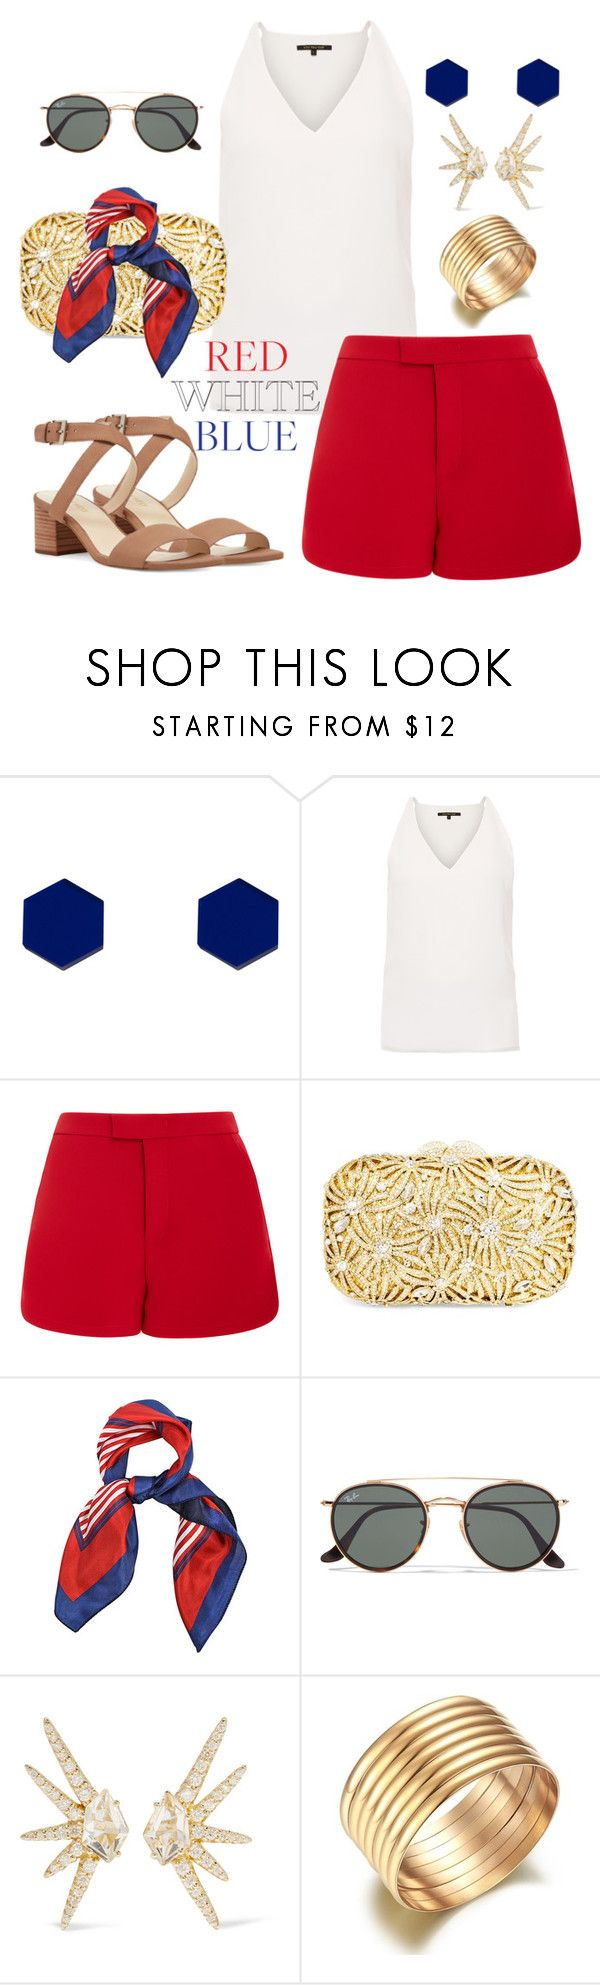 """Red White & Blue"" by tulips04 ❤ liked on Polyvore featuring Wolf & Moon, Kobi Halperin, Lela Rose, Dolli, Ray-Ban, Alexis Bittar, Nine West, redwhiteandblue, fourthofjuly and contestentry"